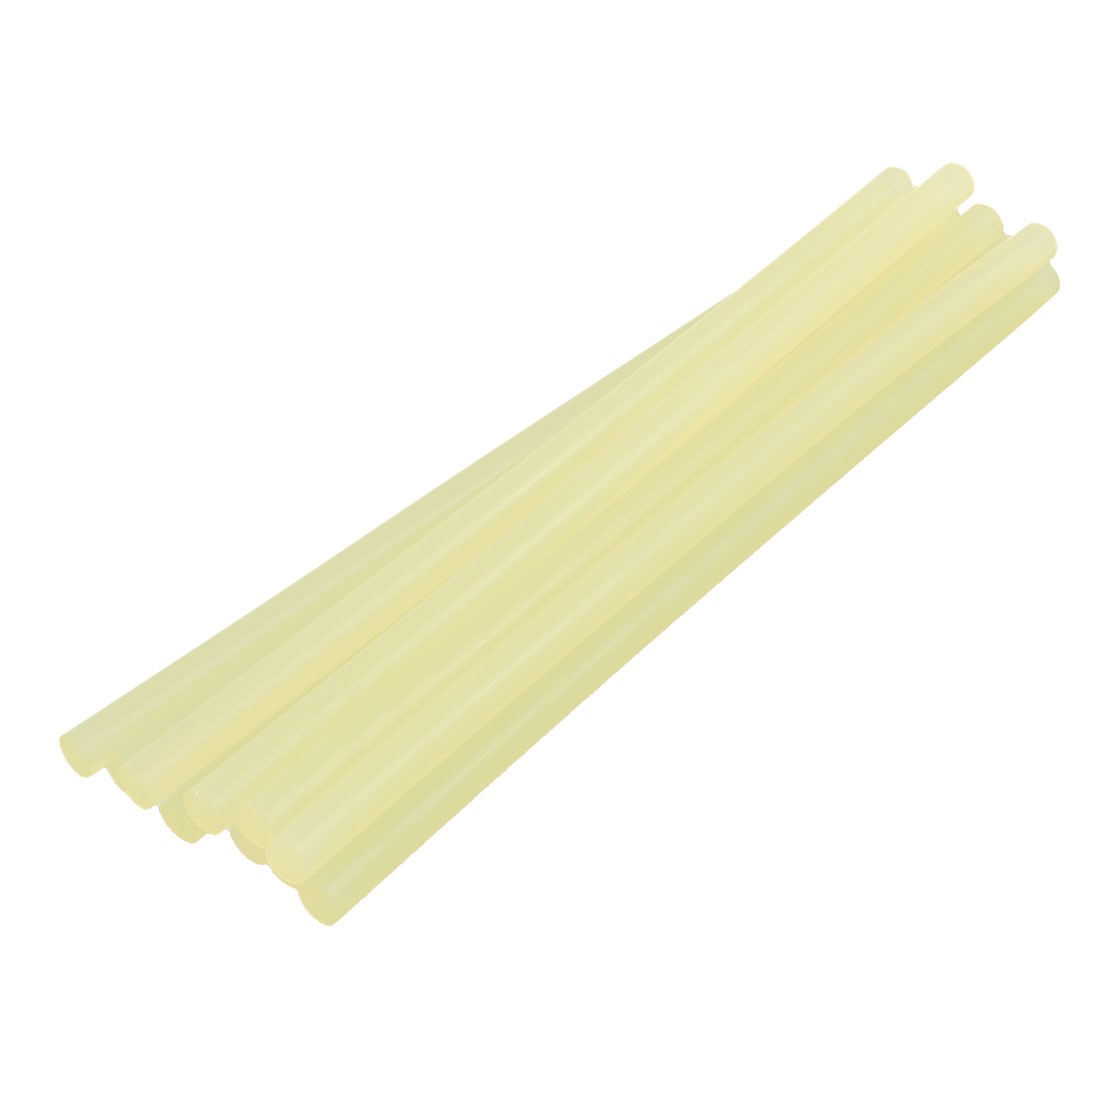 10 Pcs 11mm x 285mm Hot Melt Glue Adhesive Stick Yellow for Electric Tool Heating Gun